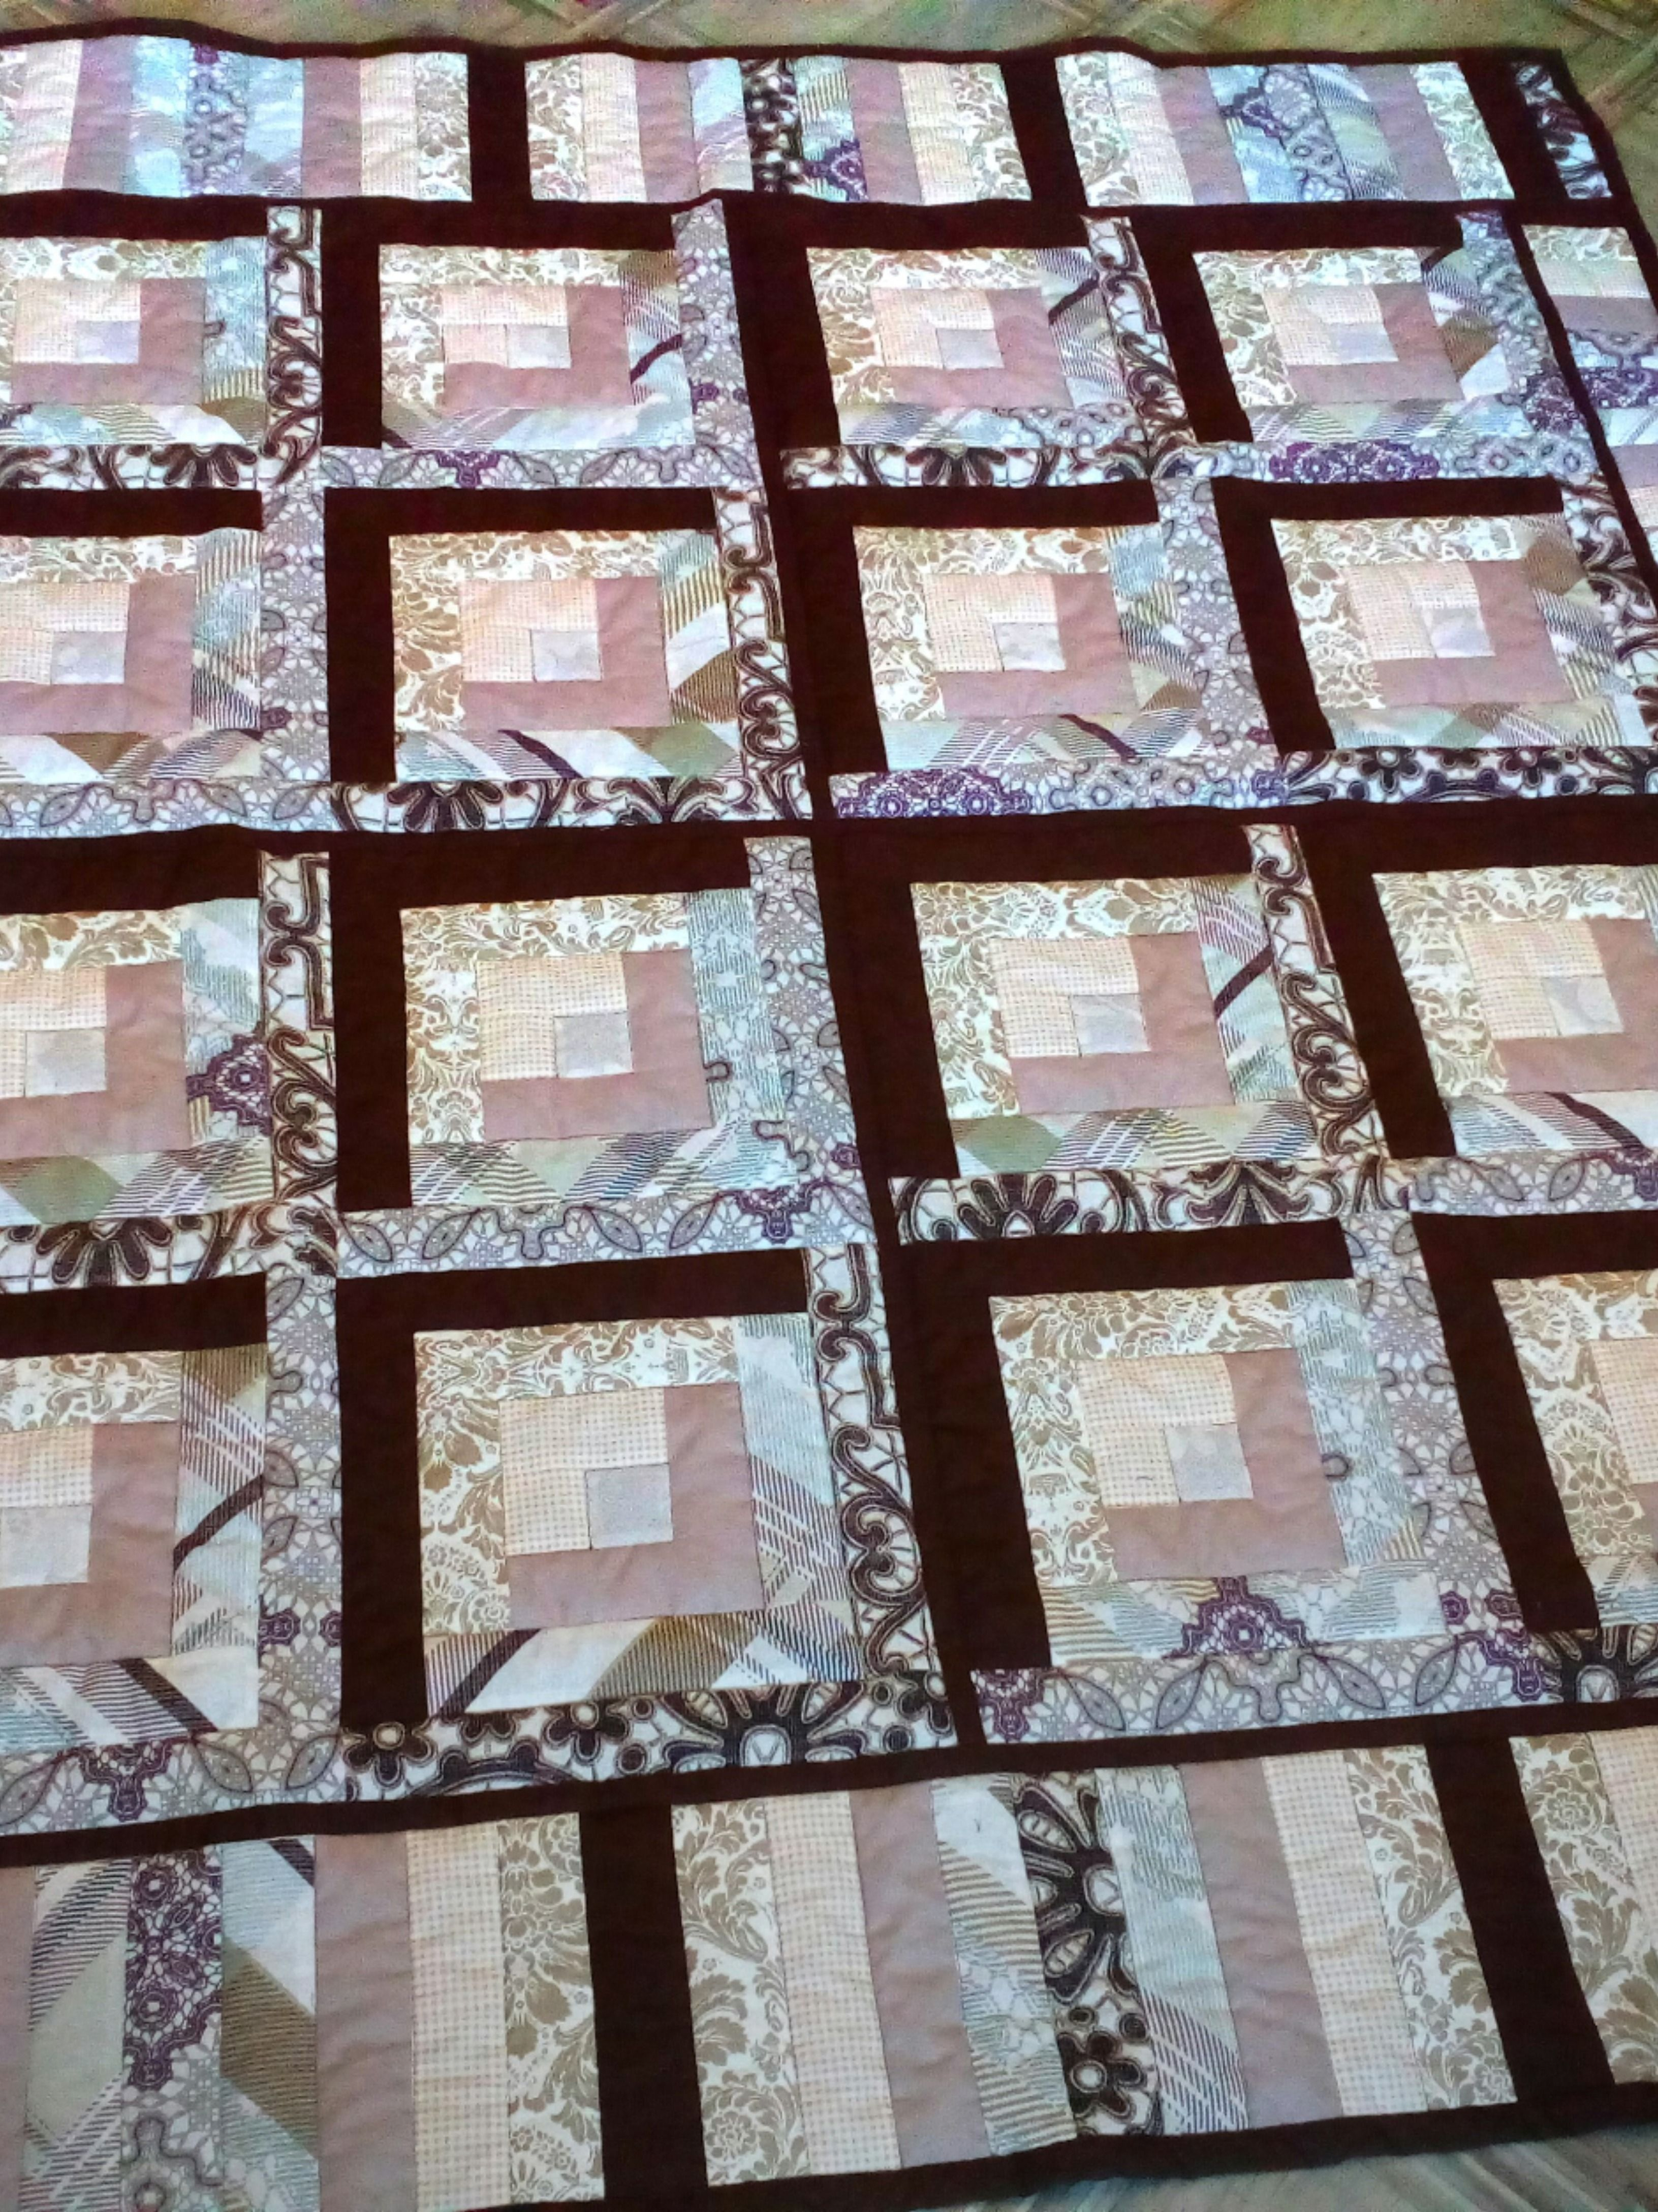 Homemade Quilt For Sale King Size Quilt For Sale Queen Size Etsy Homemade Quilts For Sale Quilts For Sale Homemade Quilts Quilts for sale king size